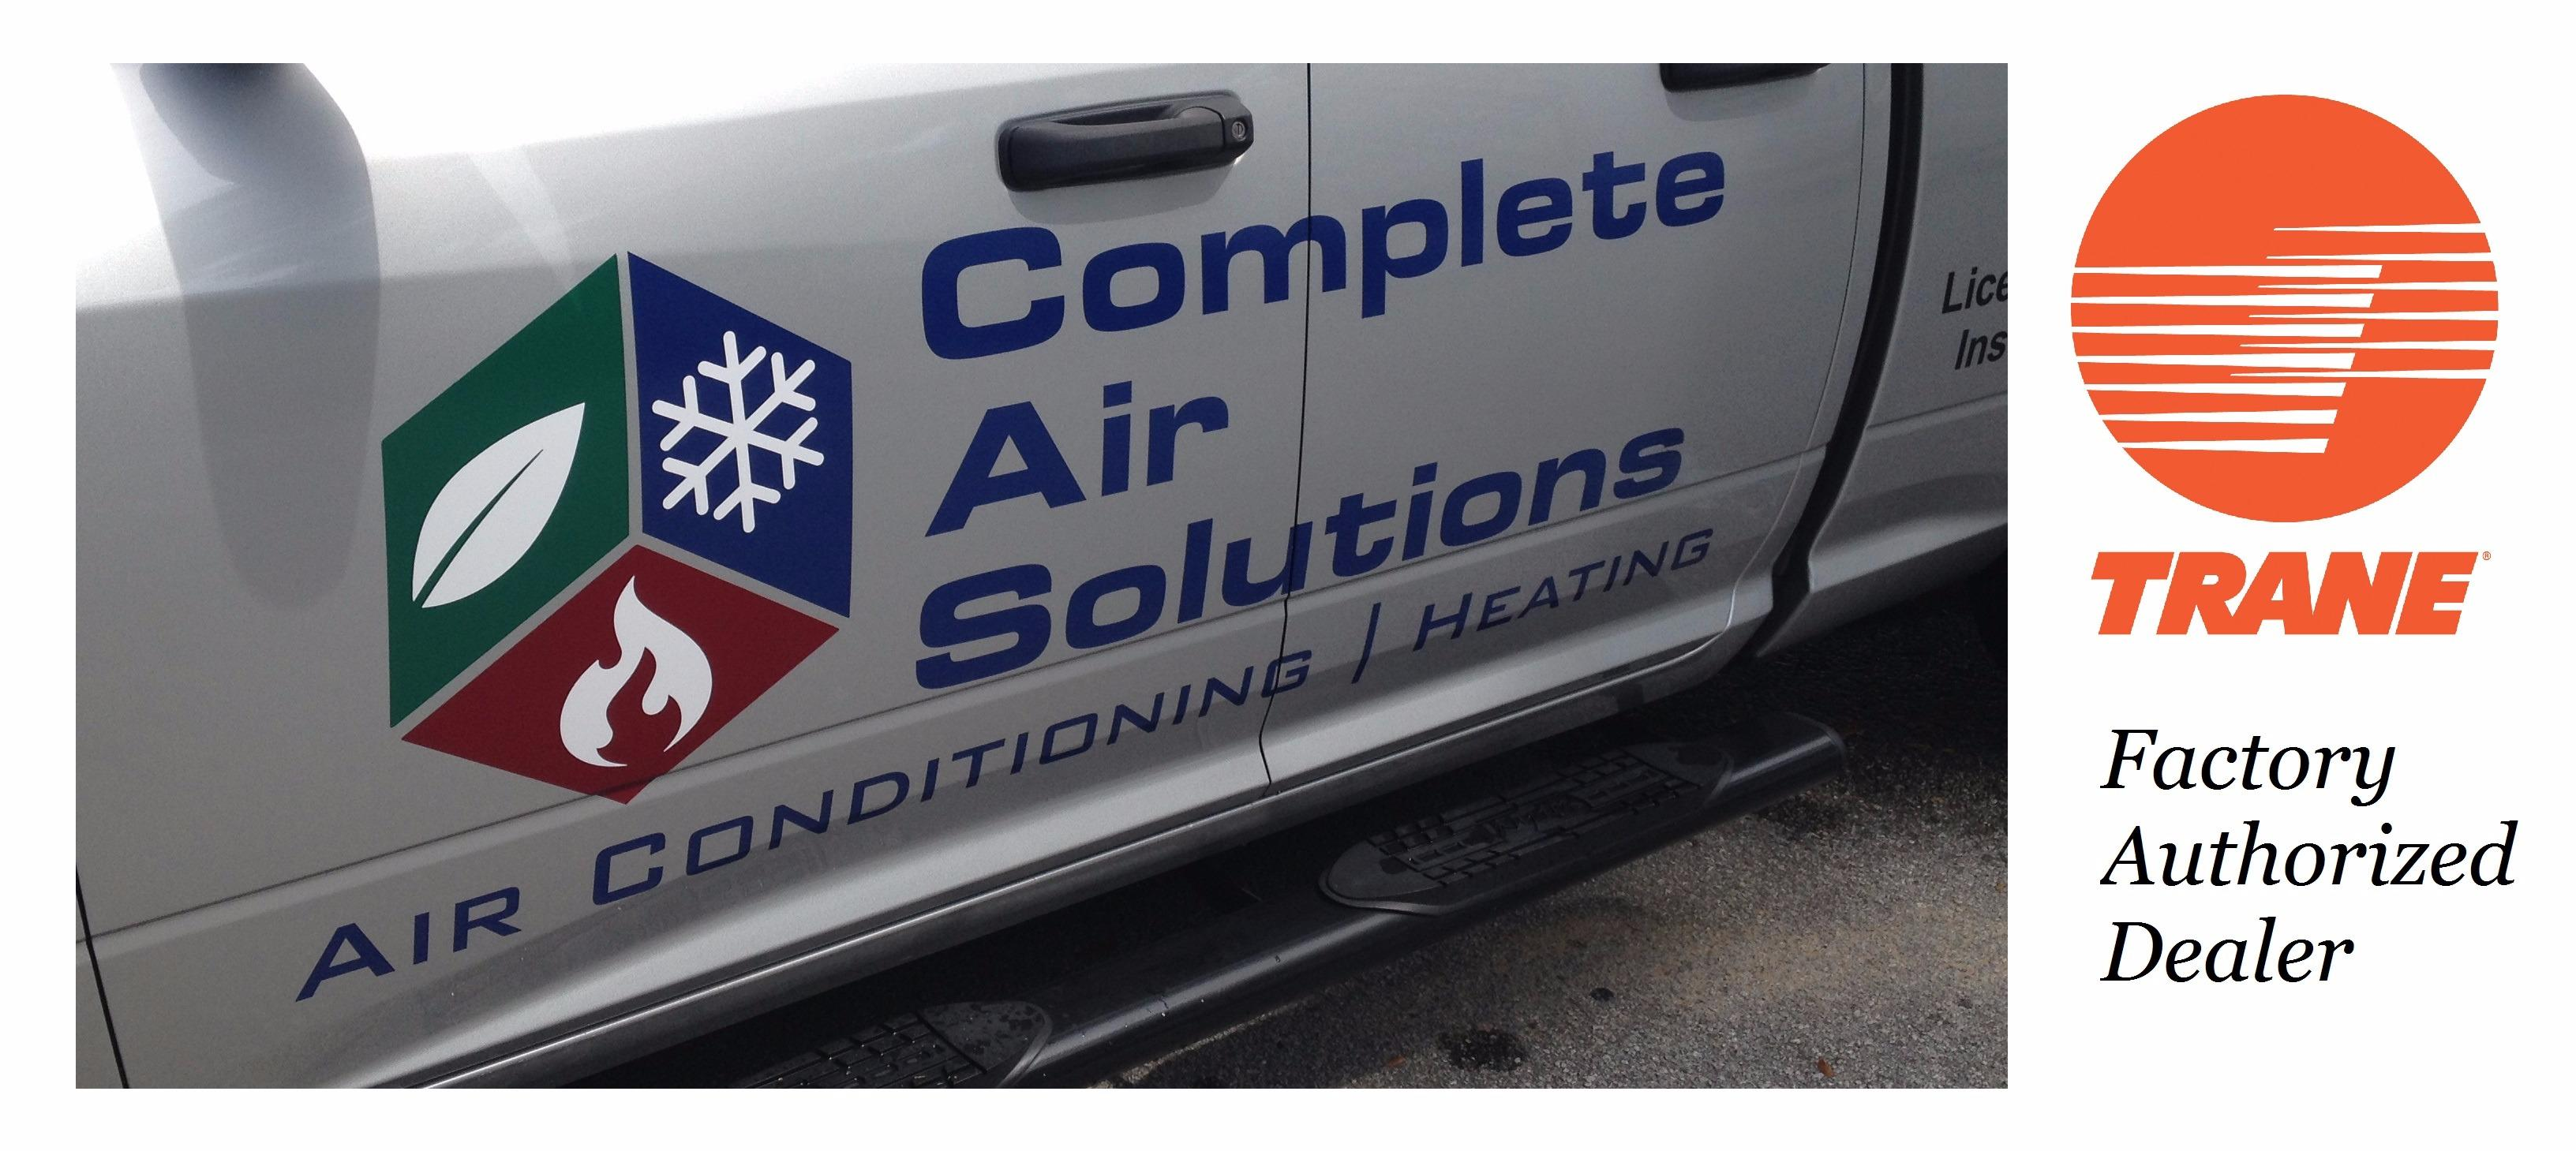 Complete Air Solutions image 5